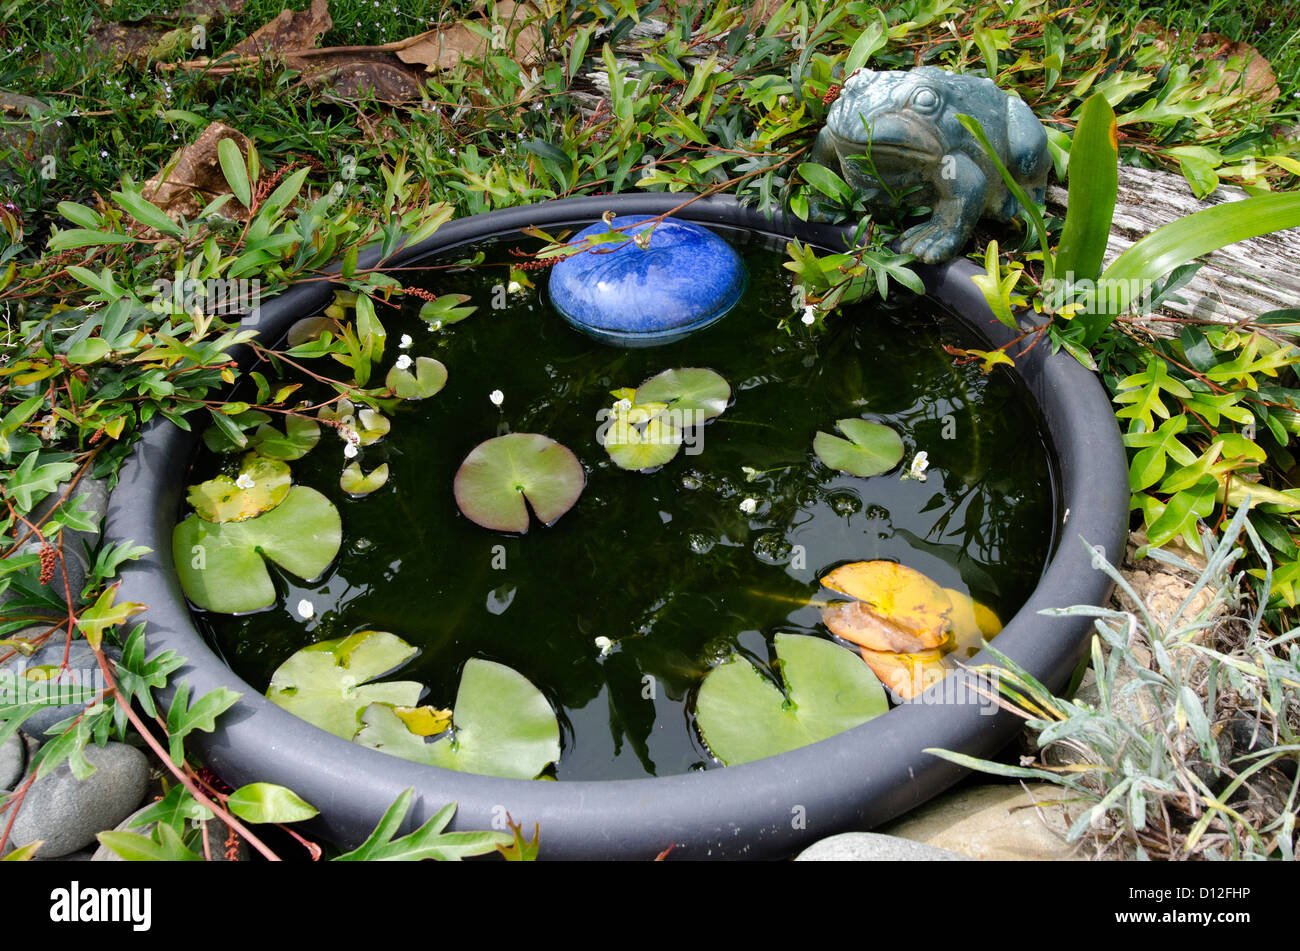 Alamy & A frog statue decor and a water pond in the garden Stock Photo ...